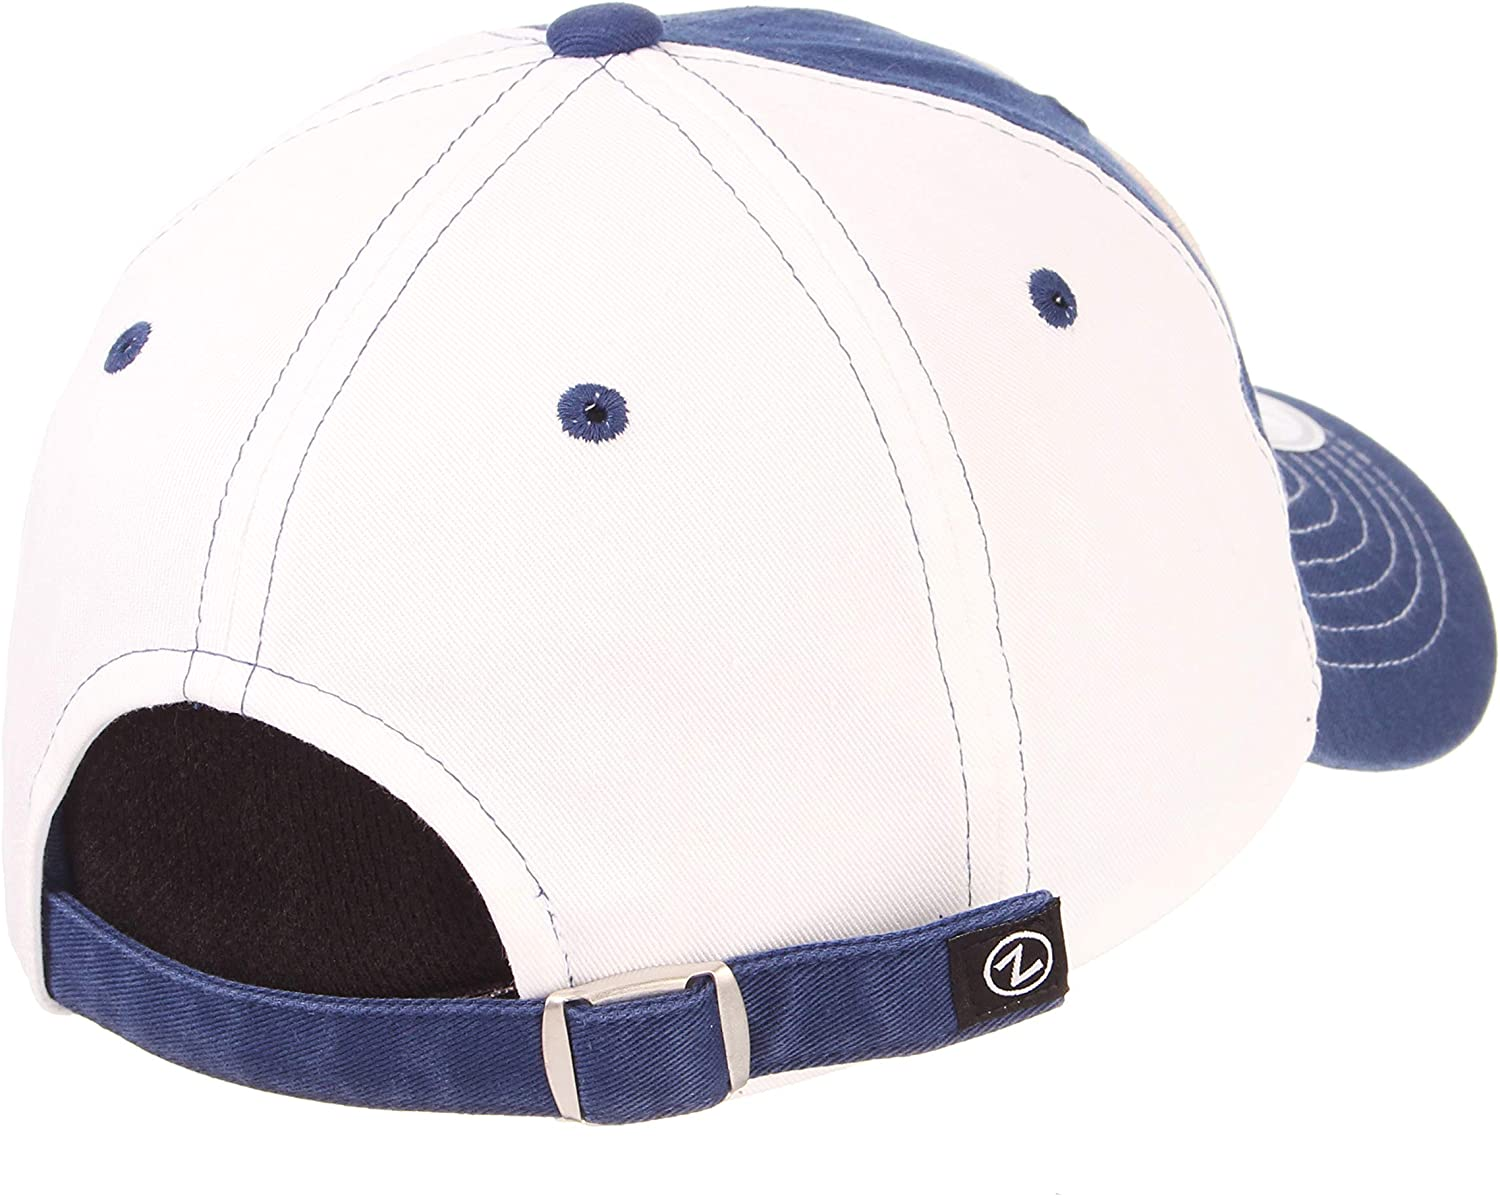 Adjustable Team Color//White Zephyr Vogue 2 Womens Relaxed Cap